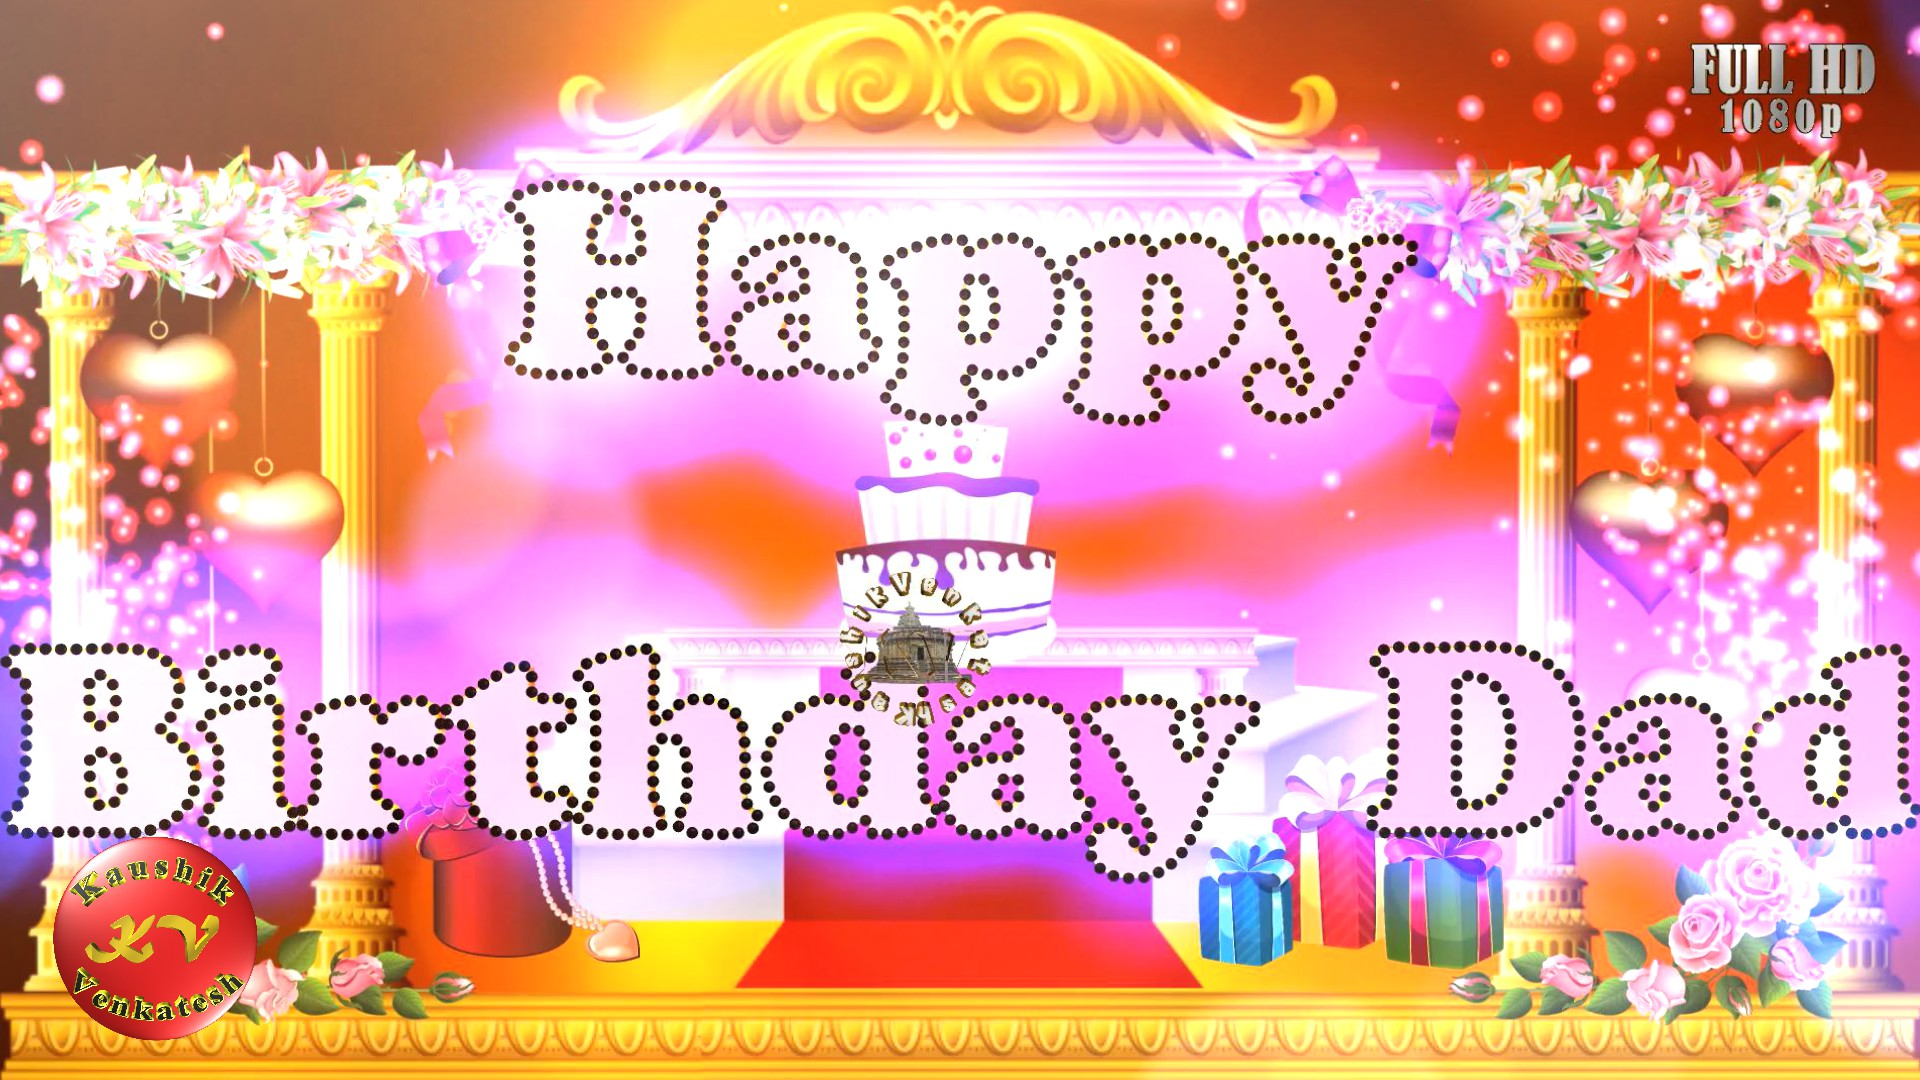 Greetings Image for the Special Occasion of Birthday. Happy Birthday Wishes Images for your loving Dad's Birthday